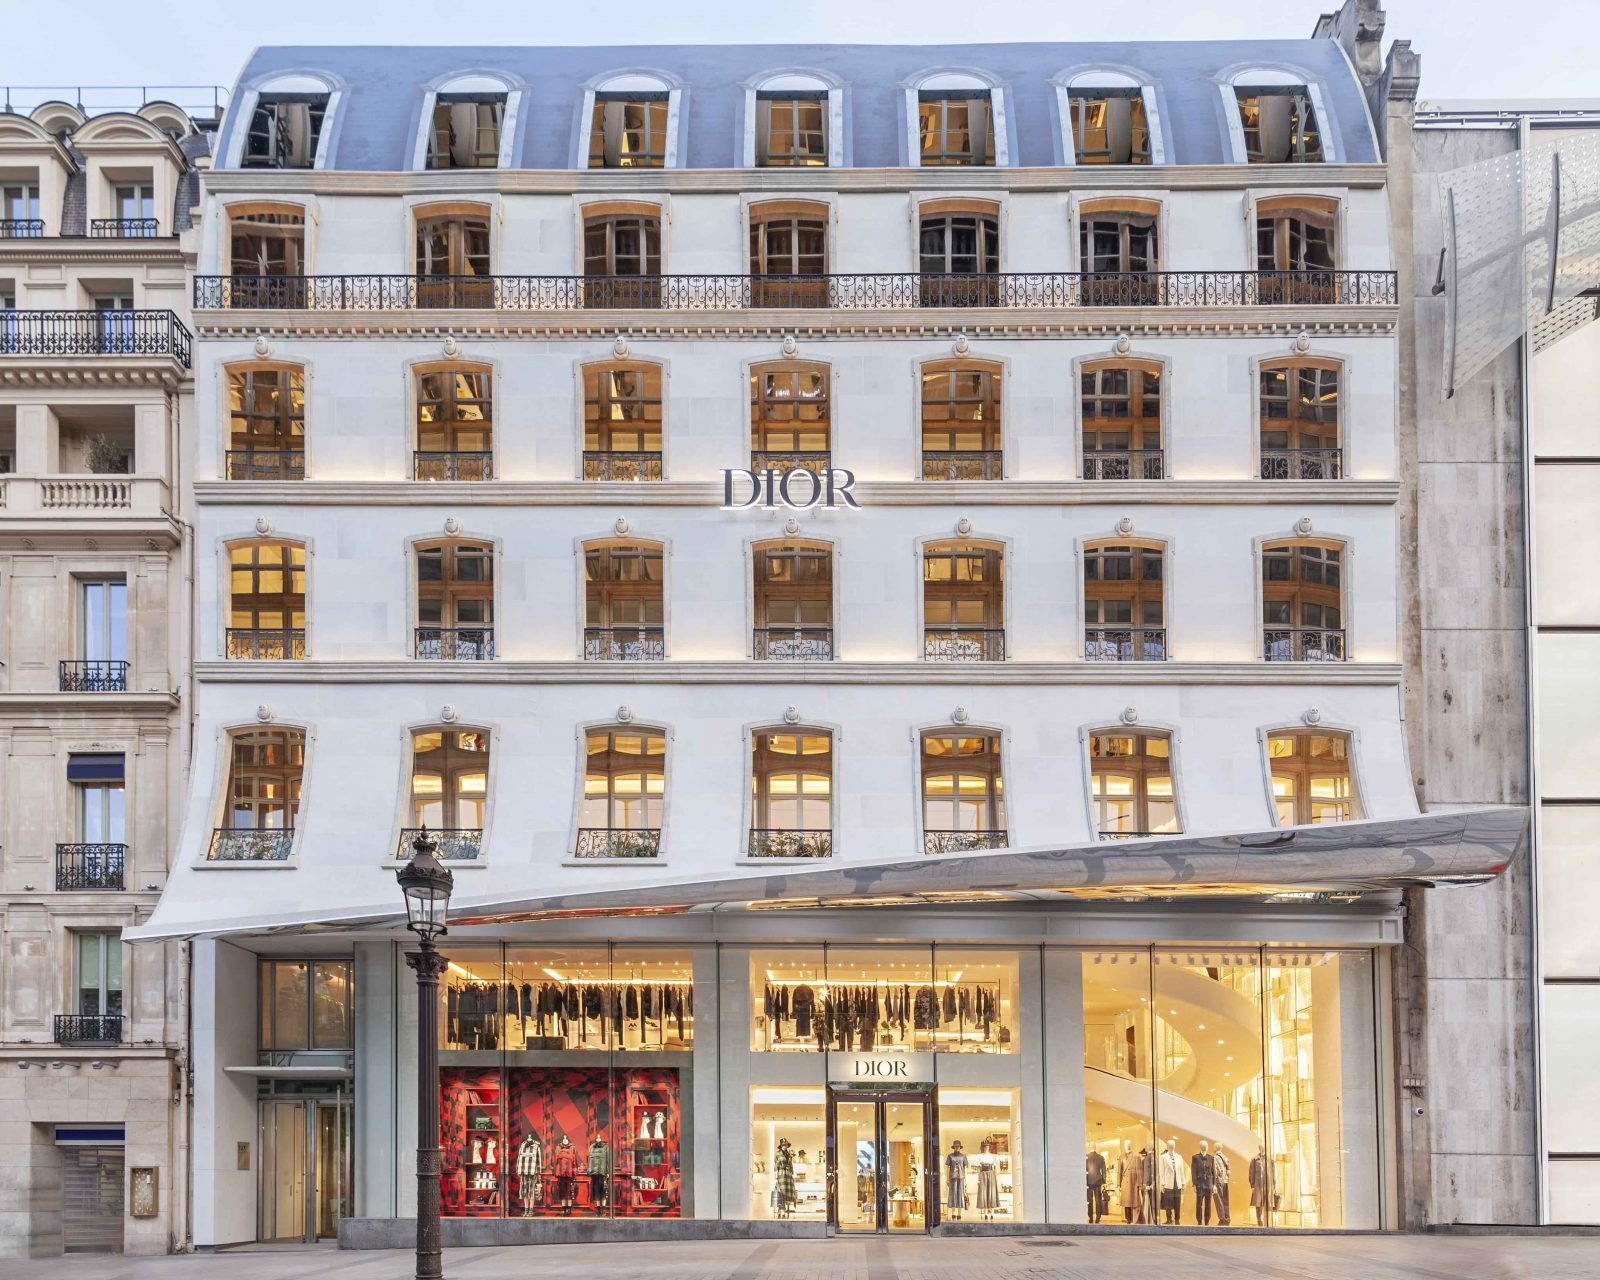 Dior Opens New Boutique In Paris At Champs-Elysees